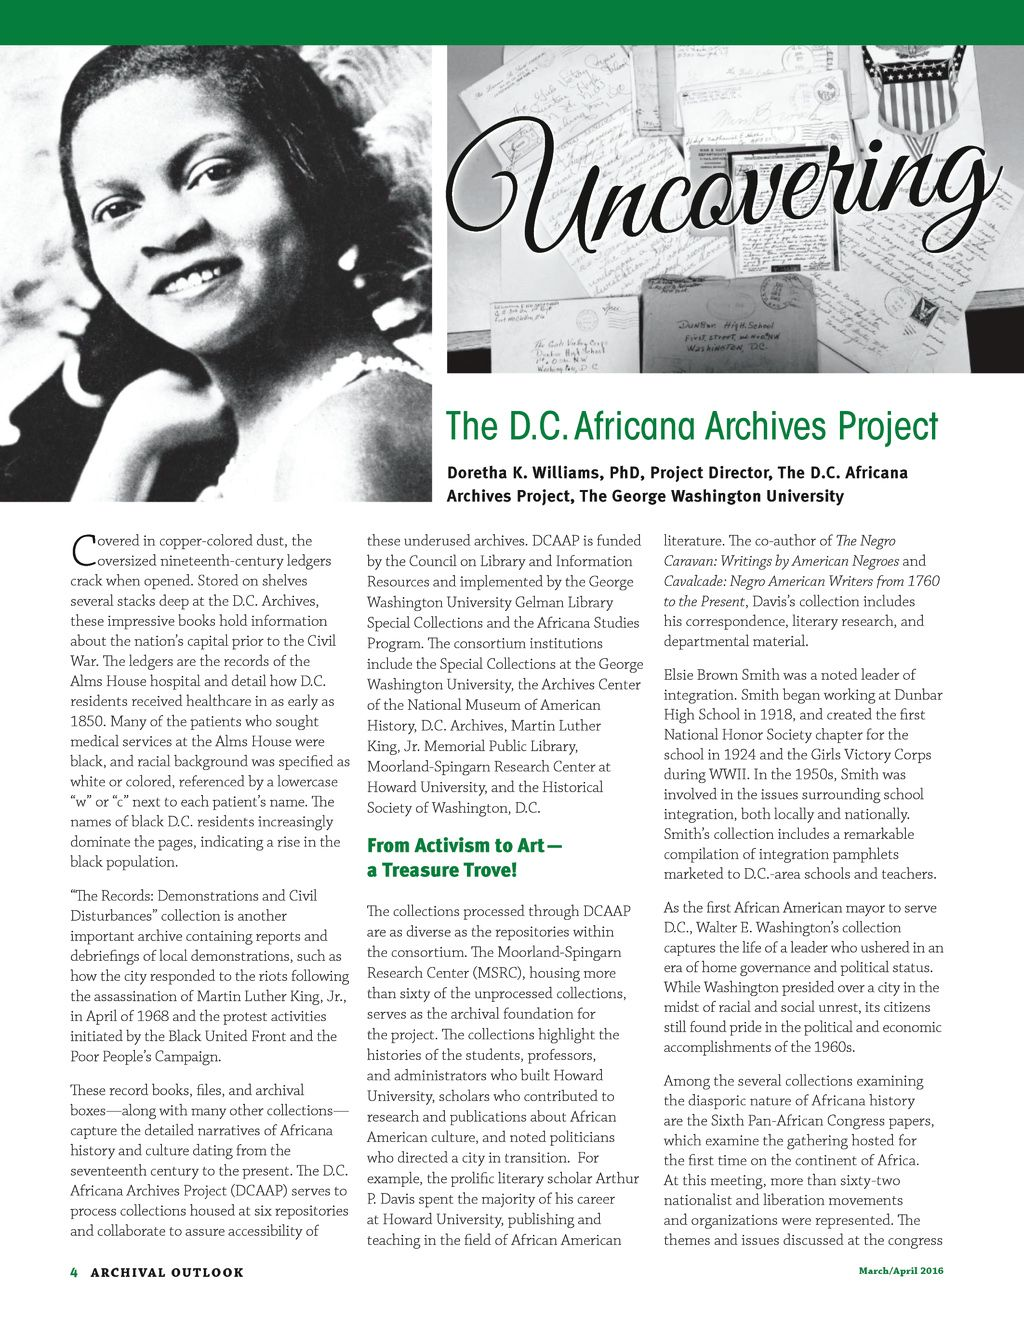 Archival Outlook March April 2016 Page 4 George Washington University African History African Diaspora